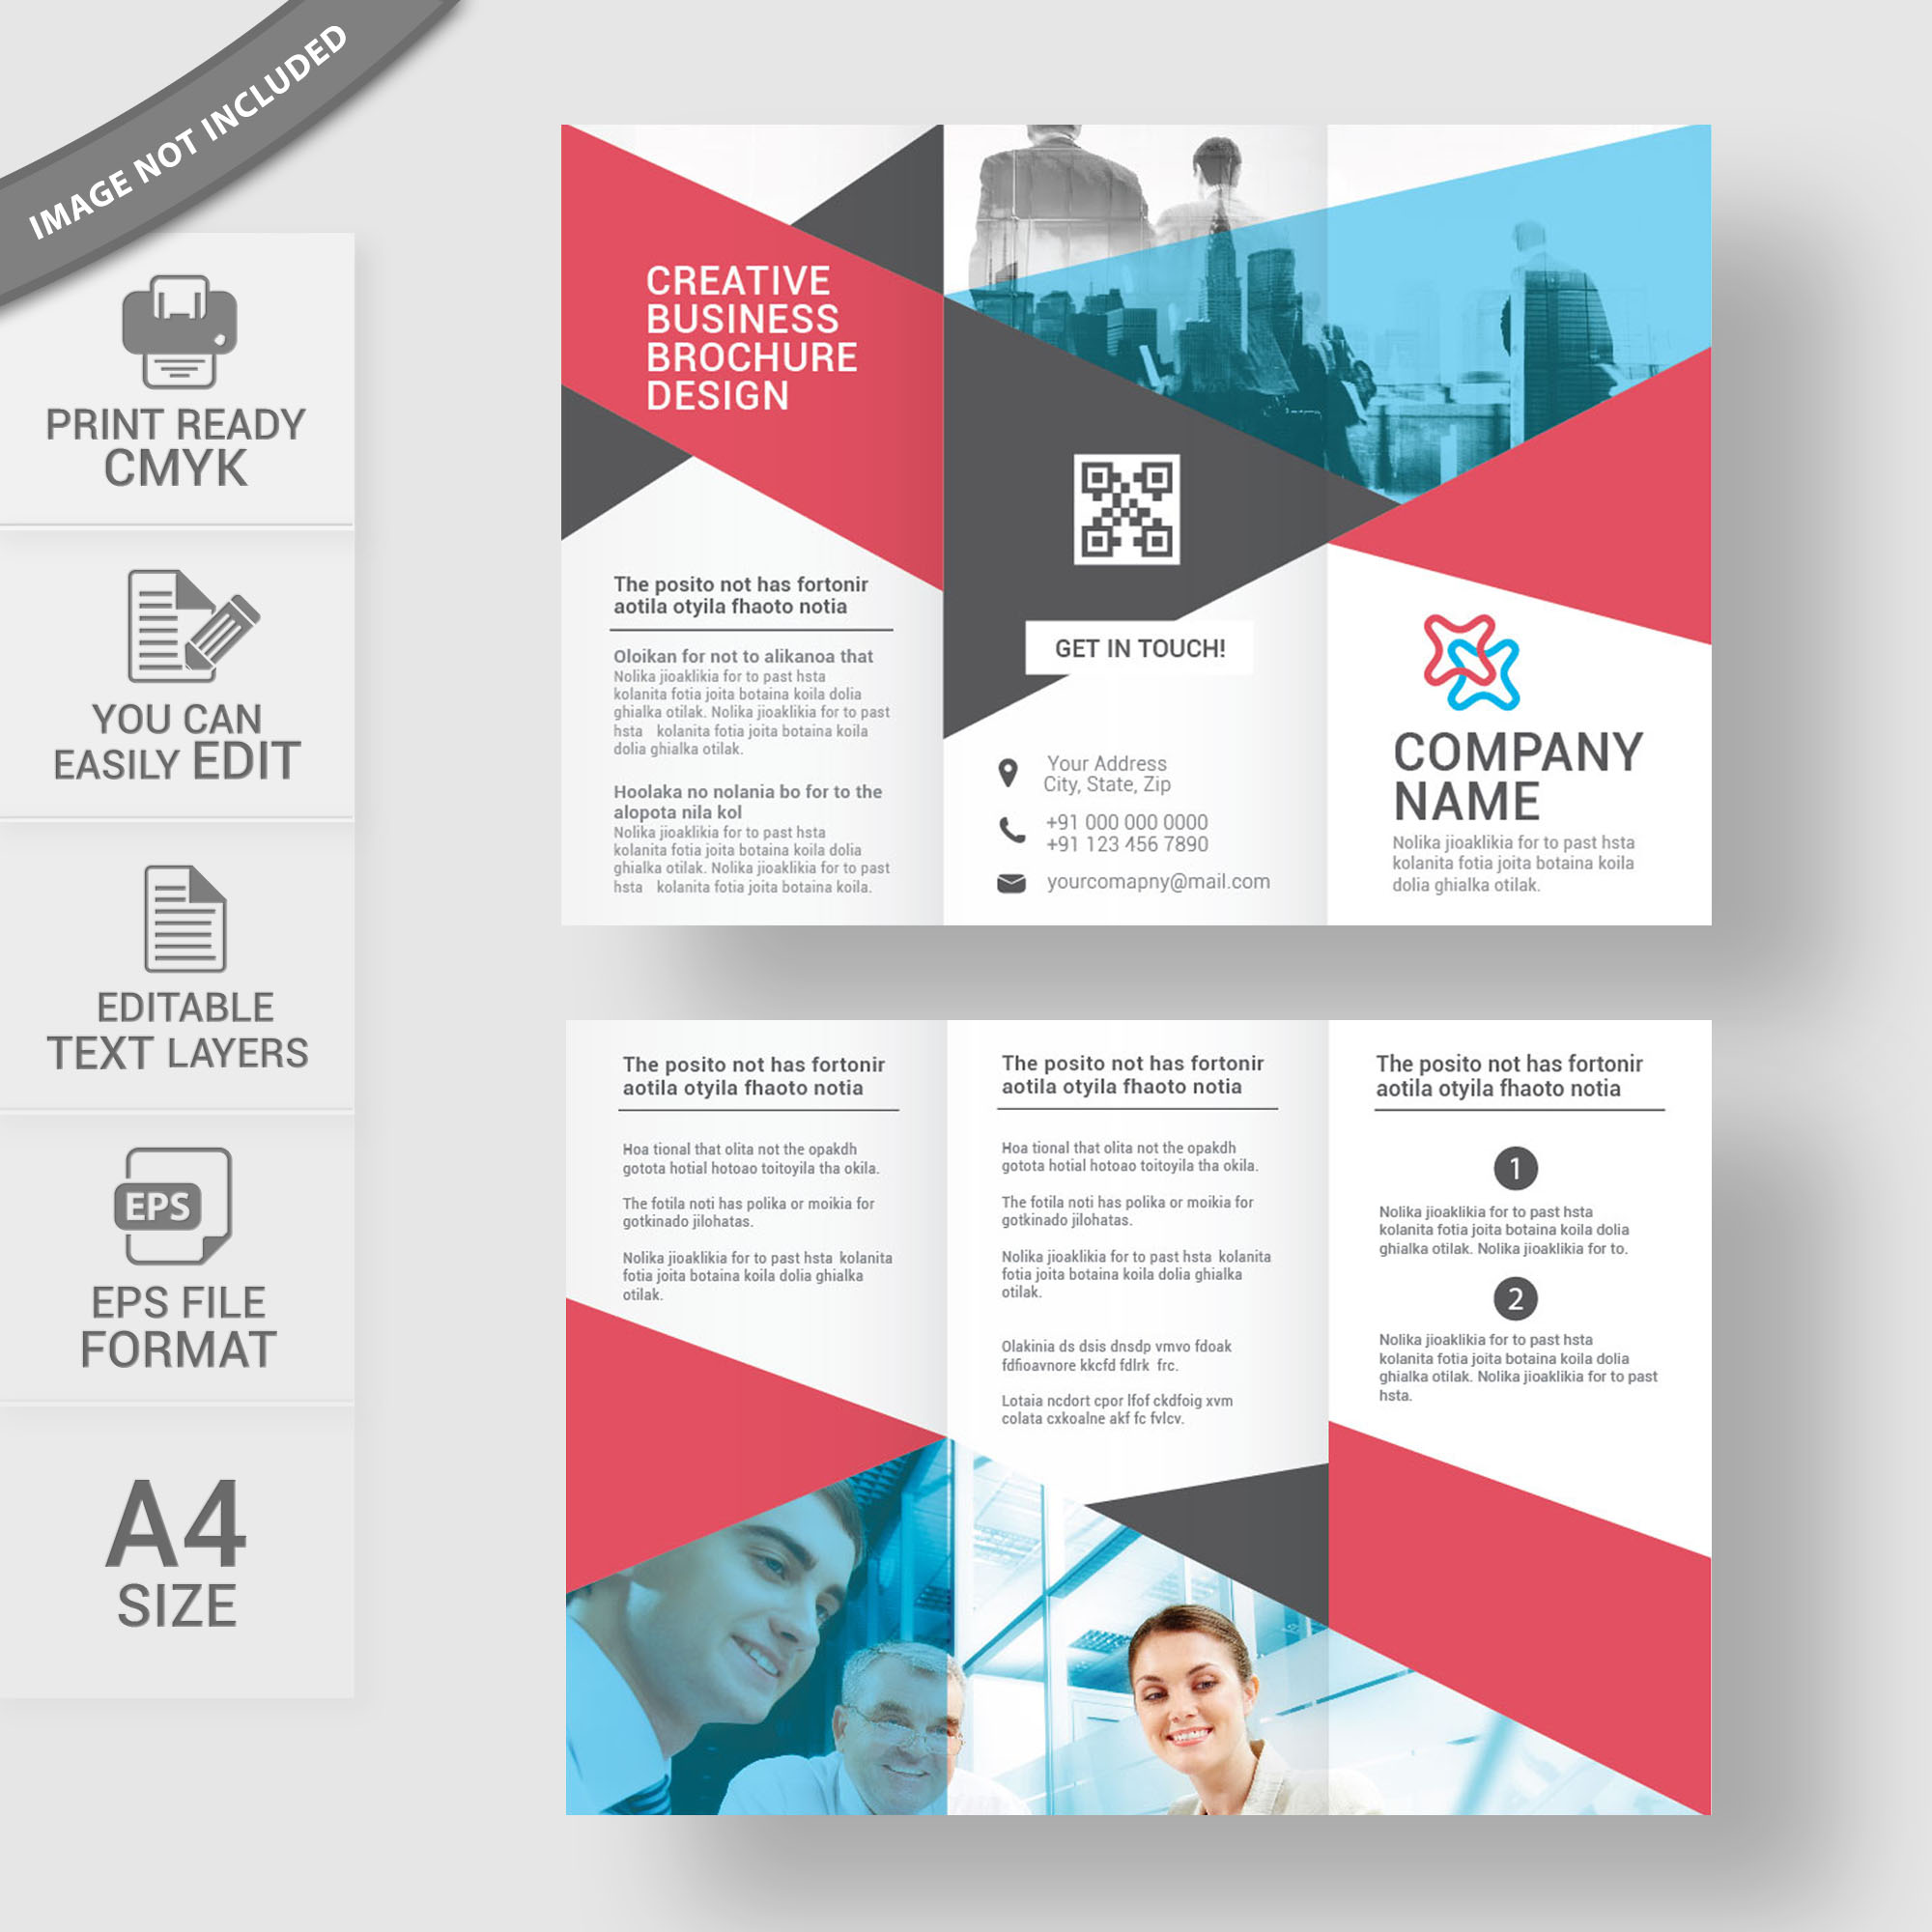 TriFold Brochure Template Free Download Print Ready Wisxicom - Brochures design templates